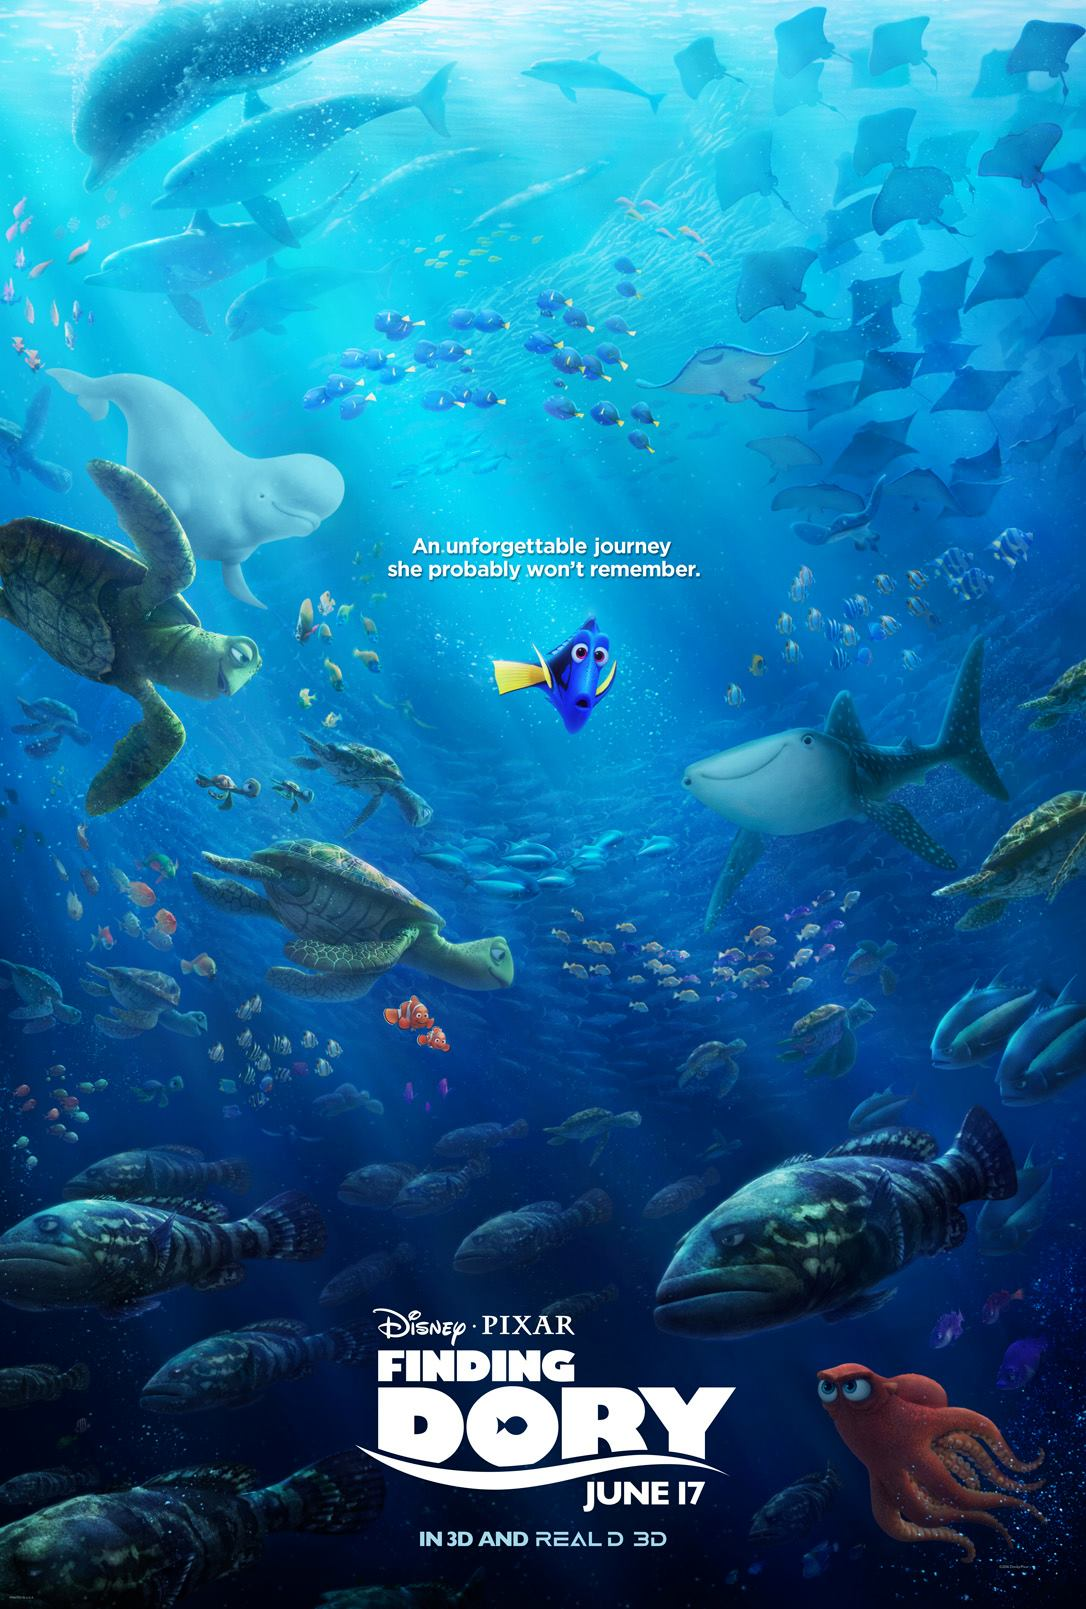 First Finding Dory TV Spot Revealed 1